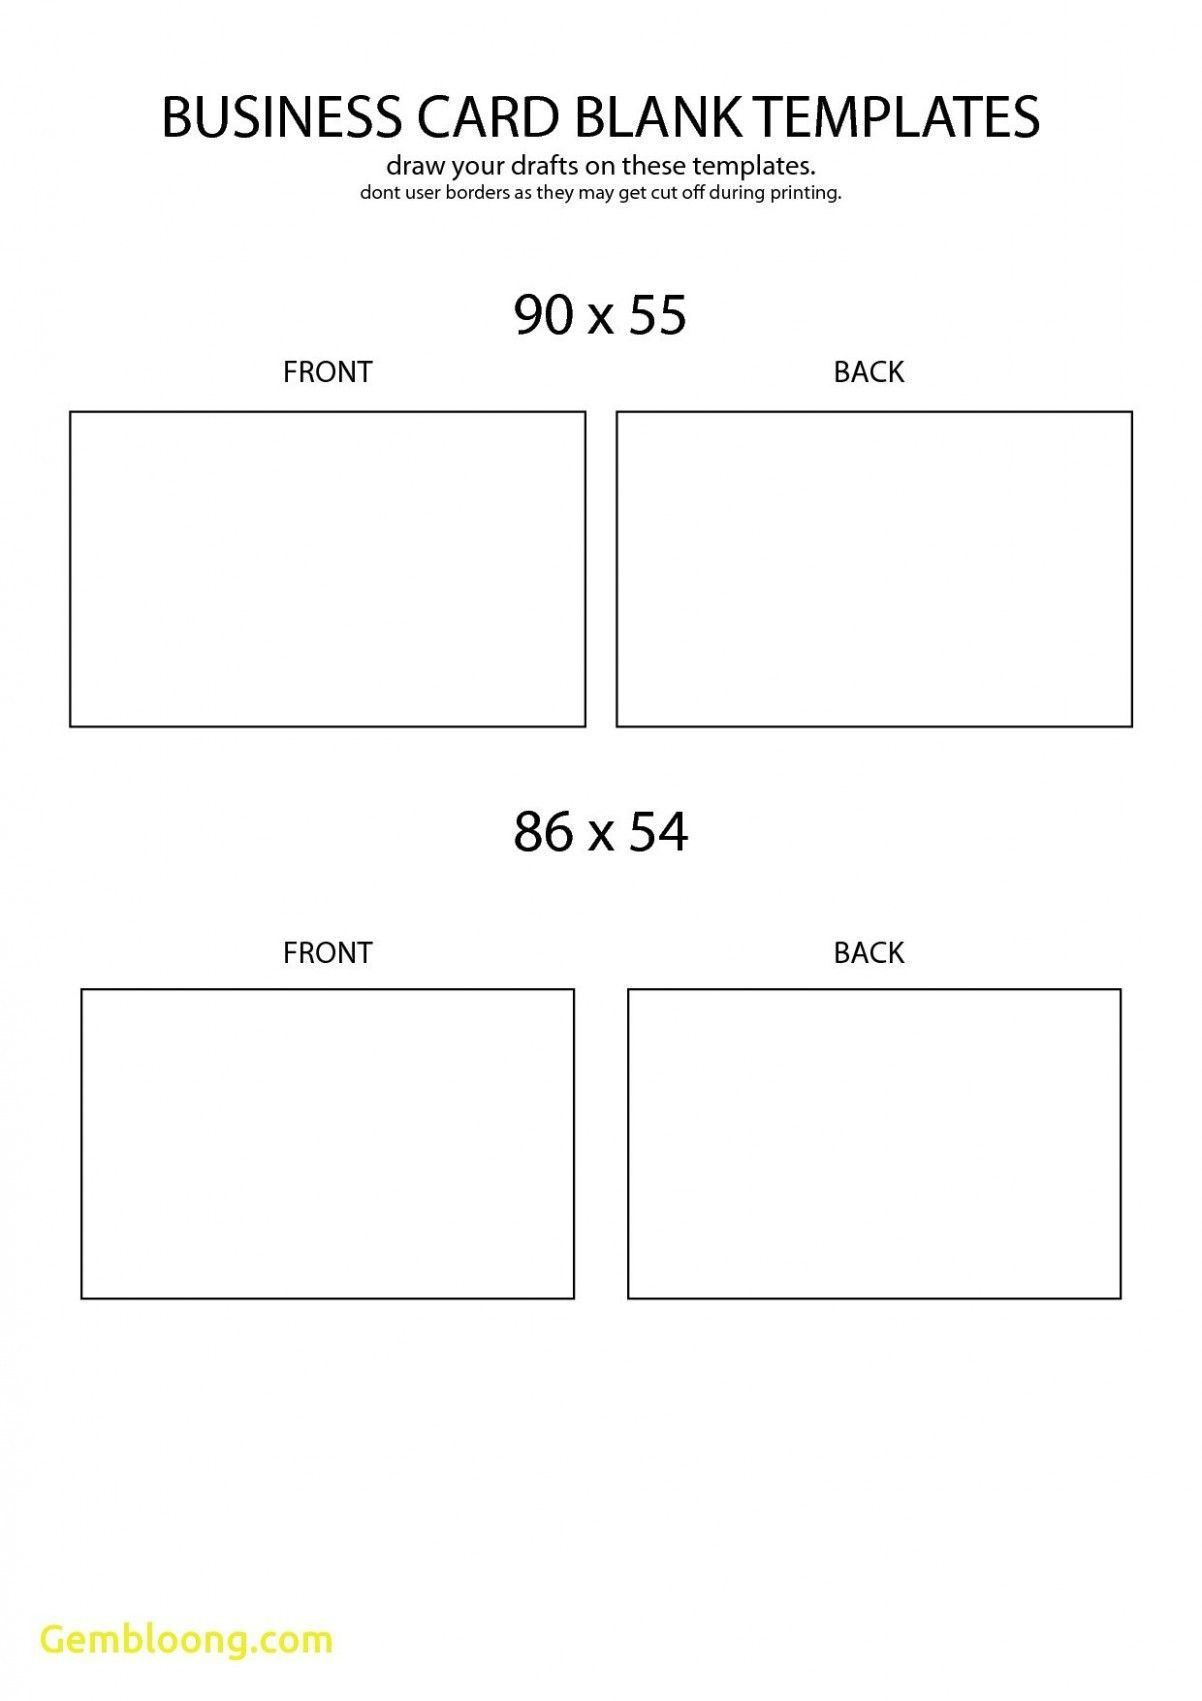 009 Archaicawful Staple Busines Card Template Psd Highest Clarity Full